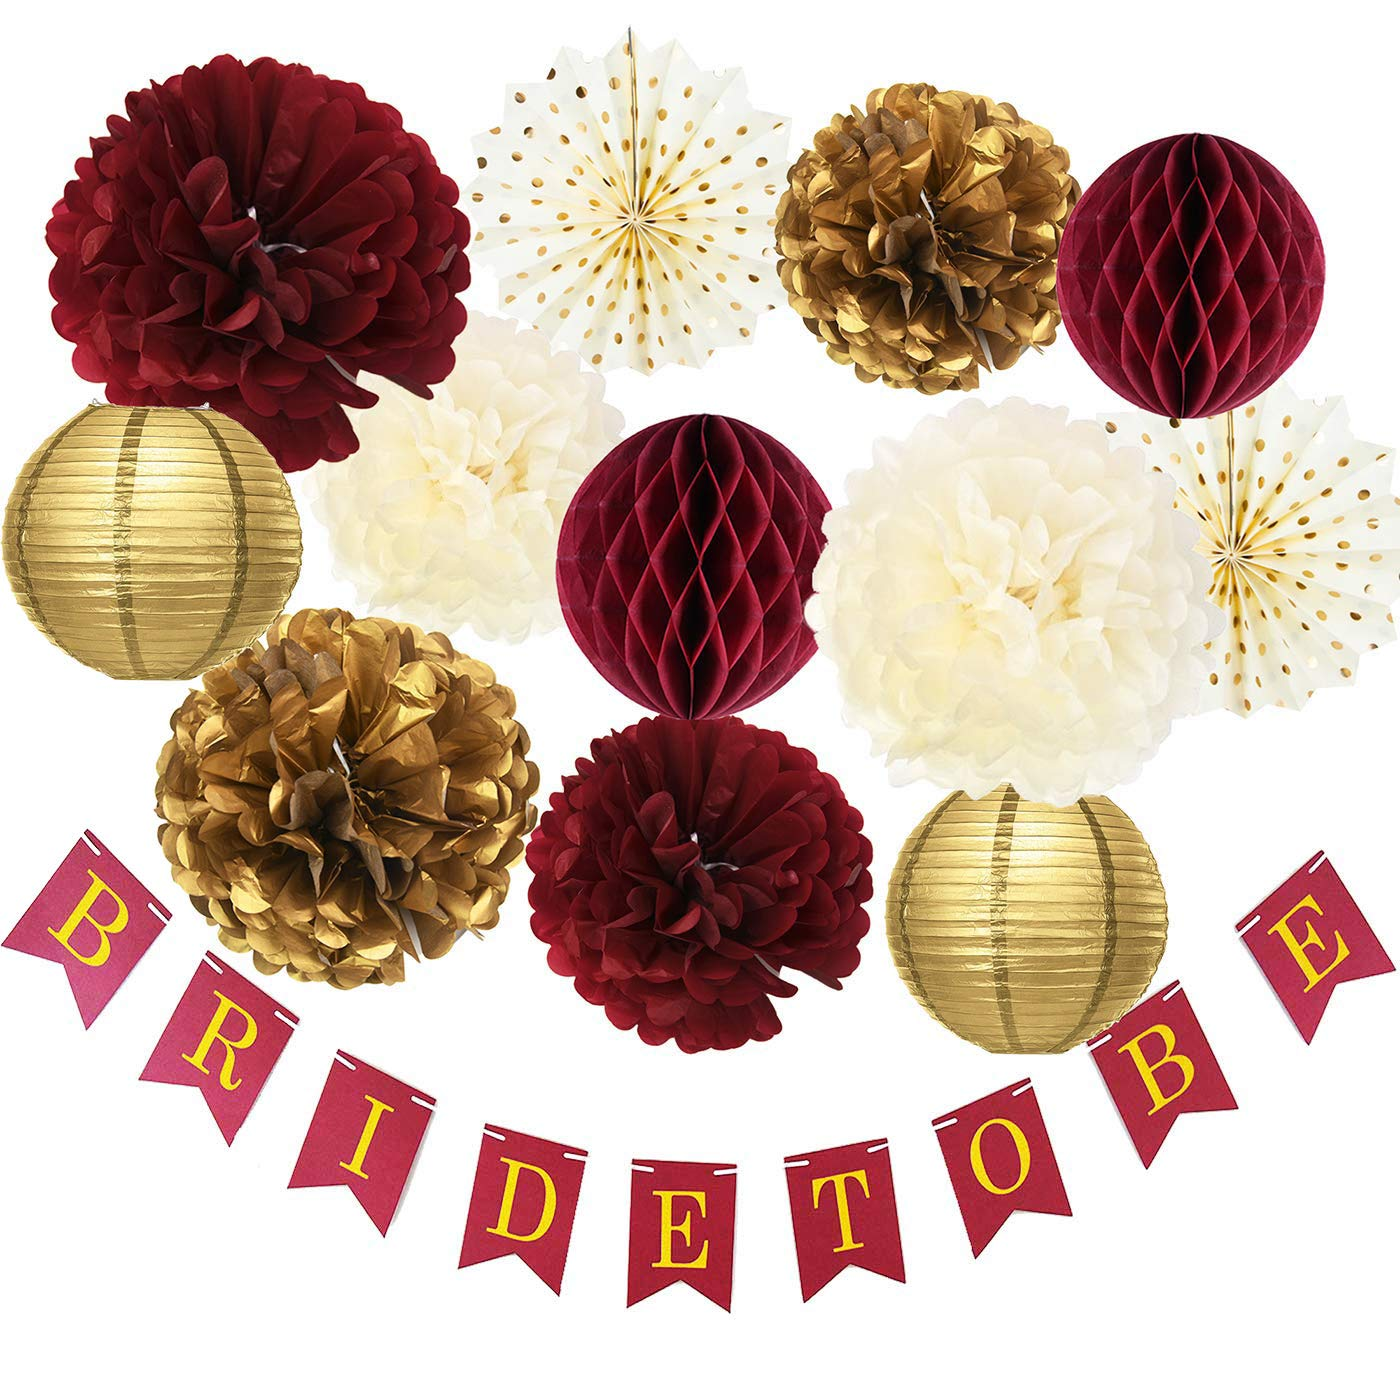 Burgundy Gold Bridal Shower Decorations/Fall Wedding Decorations Burgundy Tssue Pom Pom Honeycomb Balls Polka Dot Fans Bride to Be Banner for Burgundy Wedding/Bachelorette Party Decorations by Qian's Party